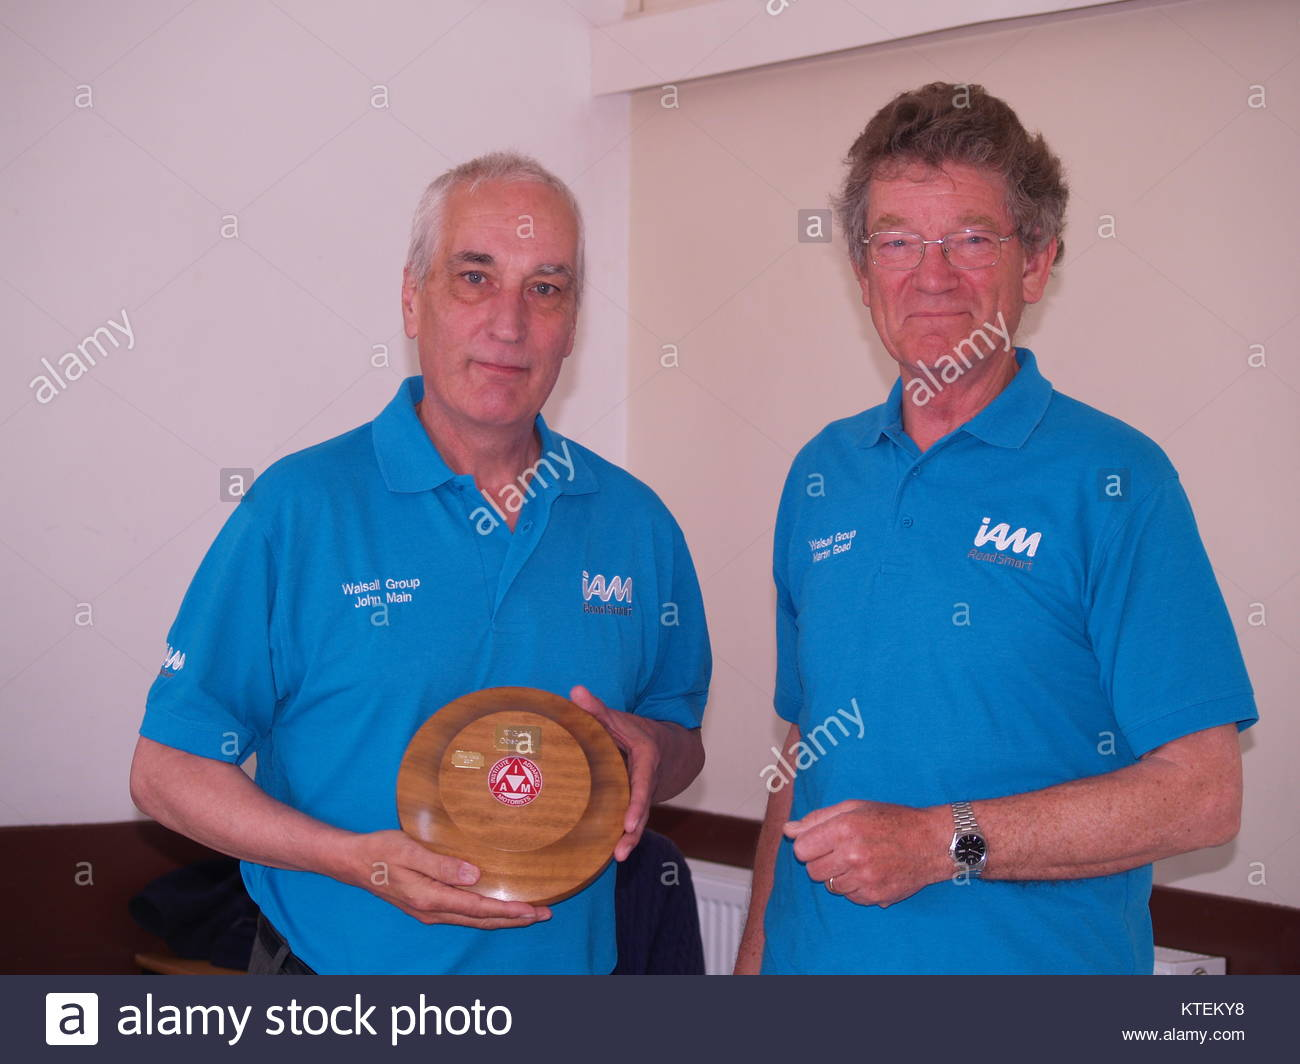 Two Men At The Award Ceremony Of The IAM Roadsmart Walsall Group - Stock Image